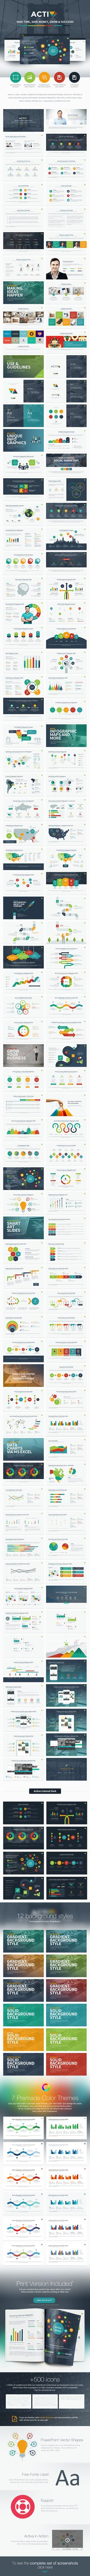 Activa Powerpoint Presentation Template #design Download: http://graphicriver.net/item/activa-powerpoint-presentation-template/11621263?ref=ksioks